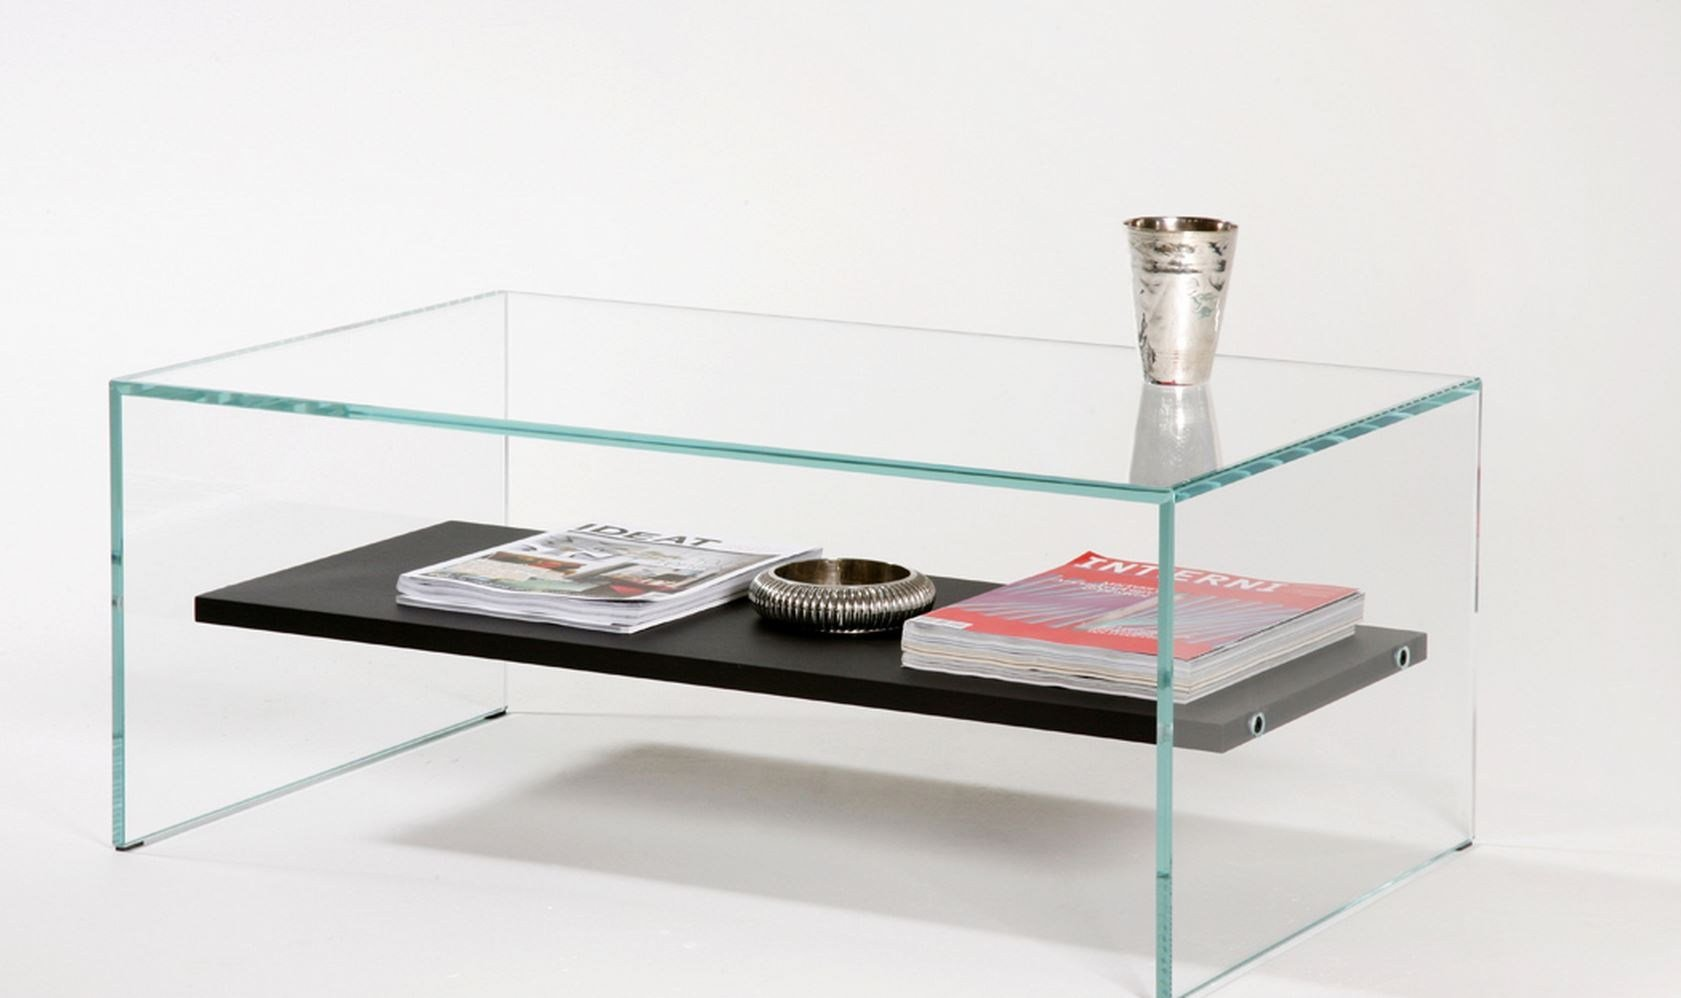 table basse avec plateau bois verre tremp extra clair transparence zen 1 by adentro design. Black Bedroom Furniture Sets. Home Design Ideas